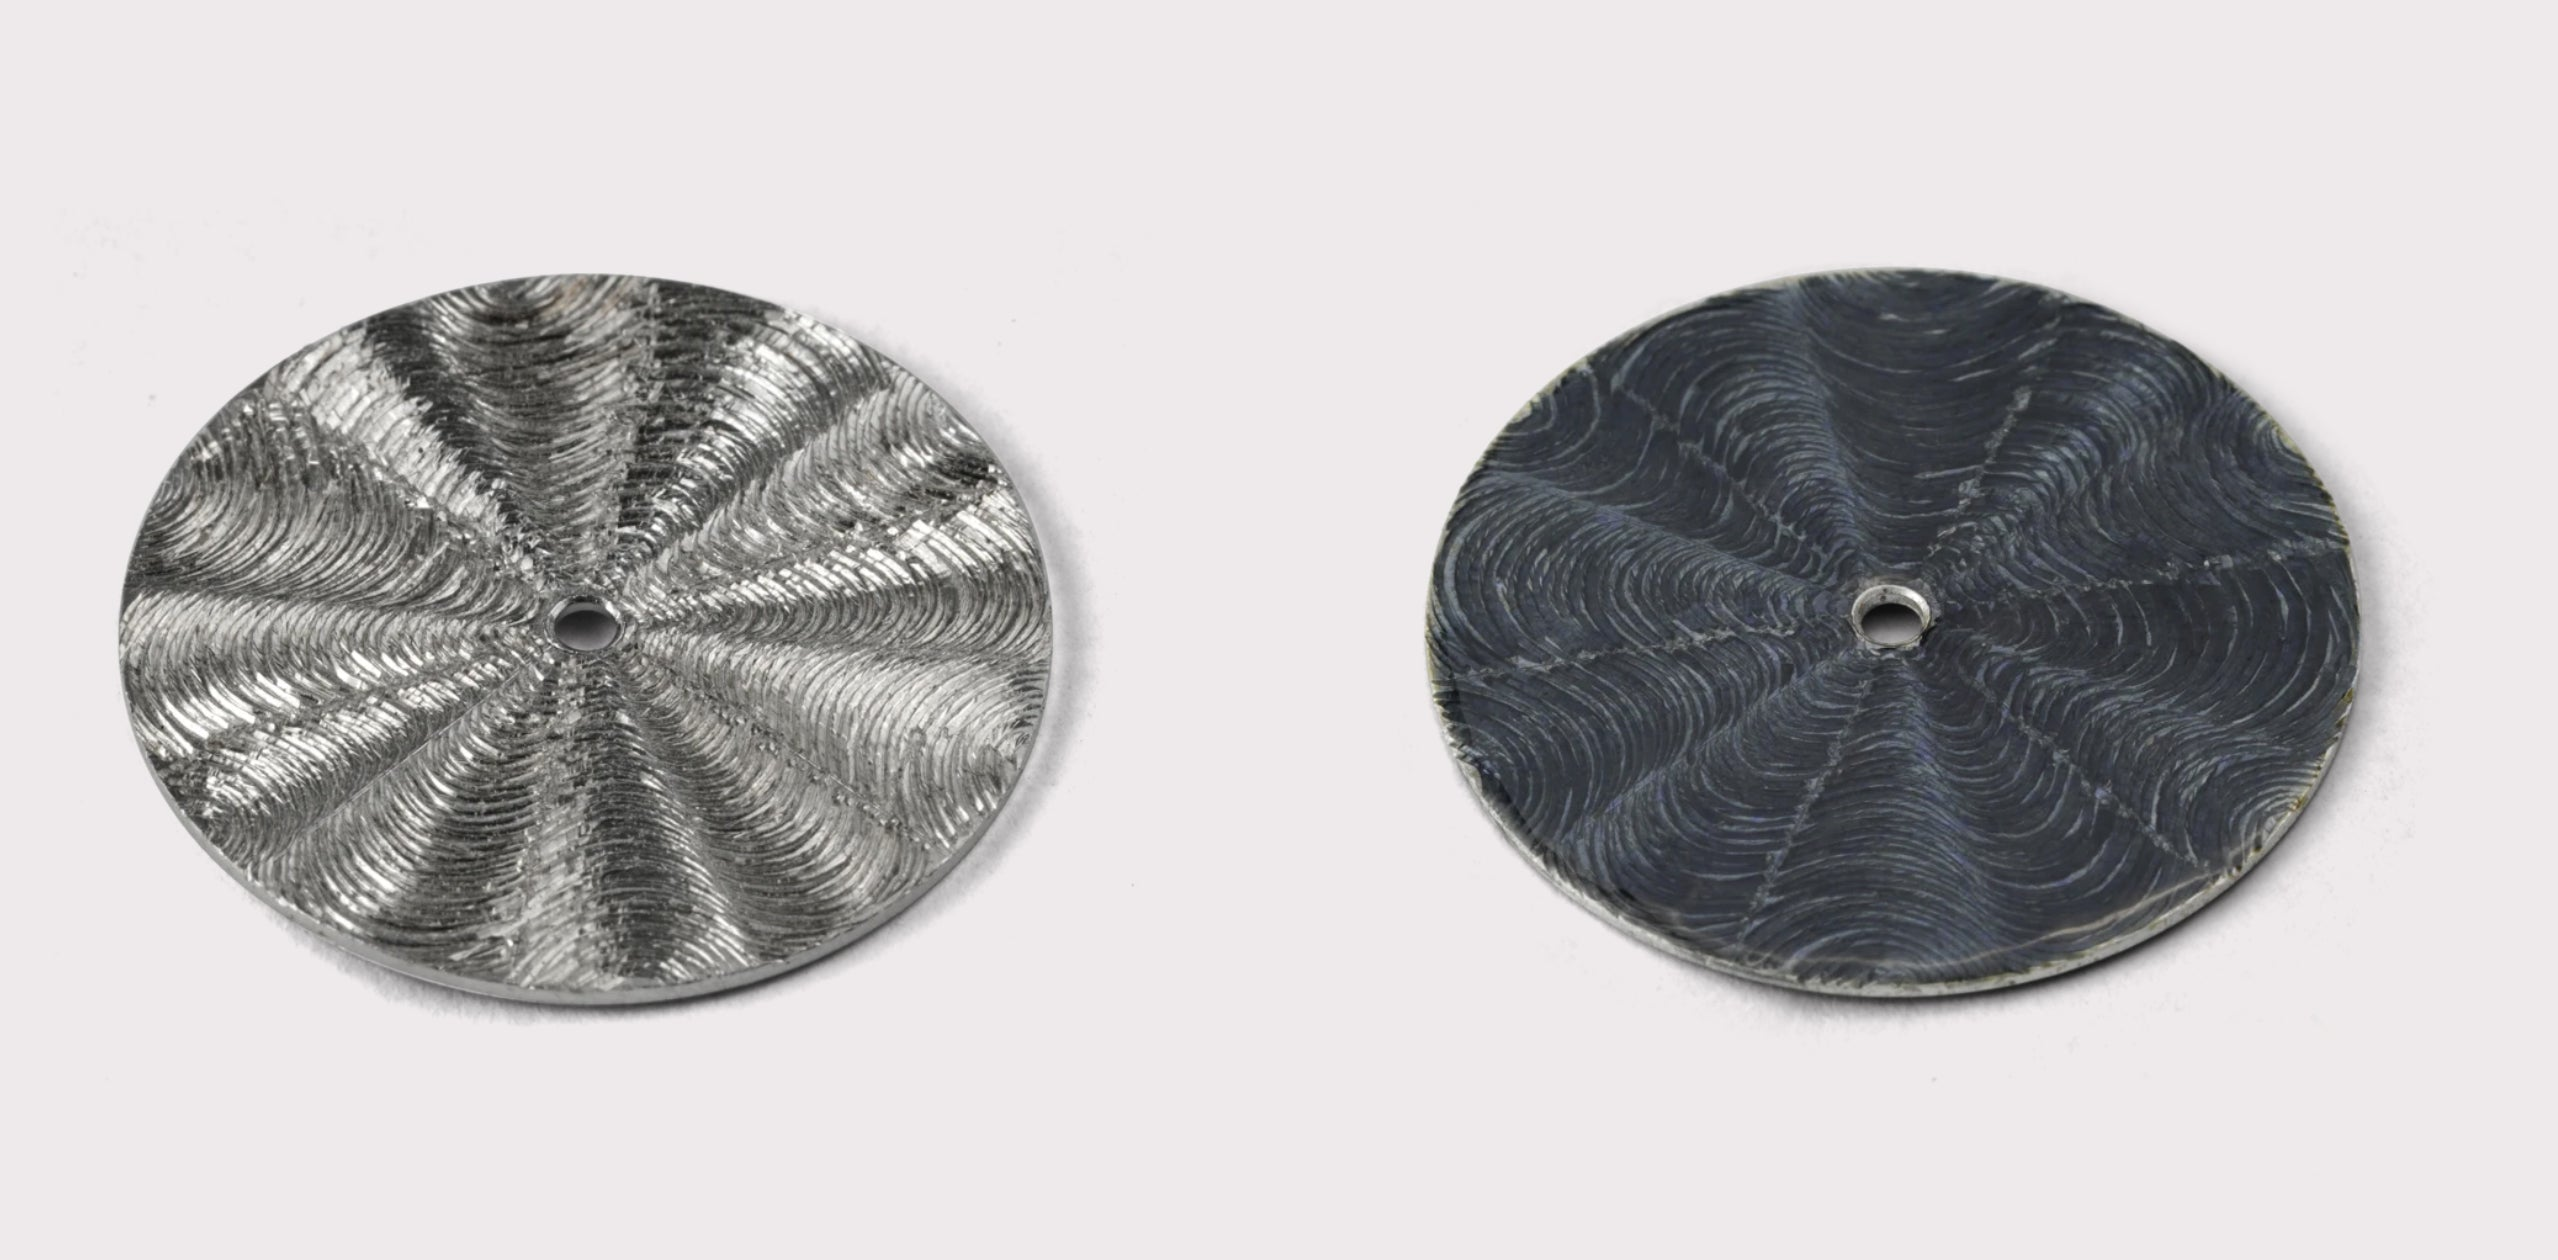 Metal dials showing engraving process in The Art of Enamel Dials for A Collected Man London